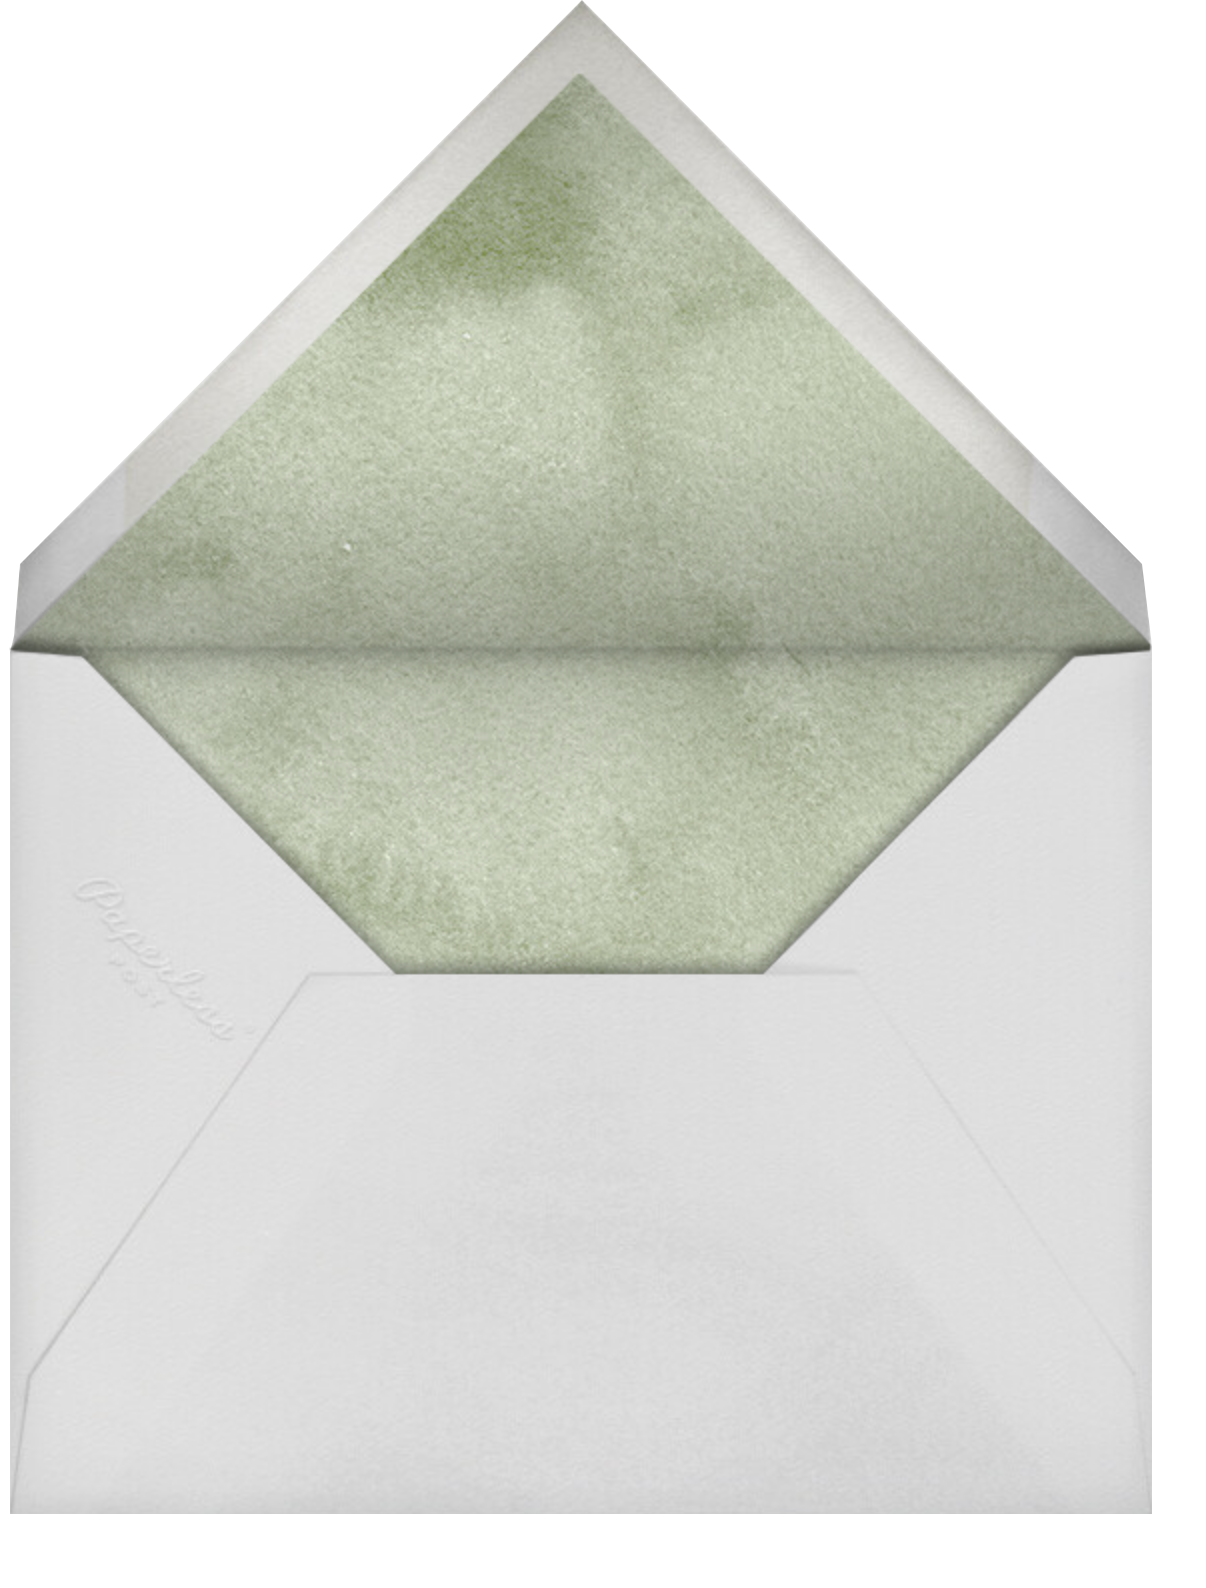 Happy (Grand)mother's Day - Paperless Post - Envelope